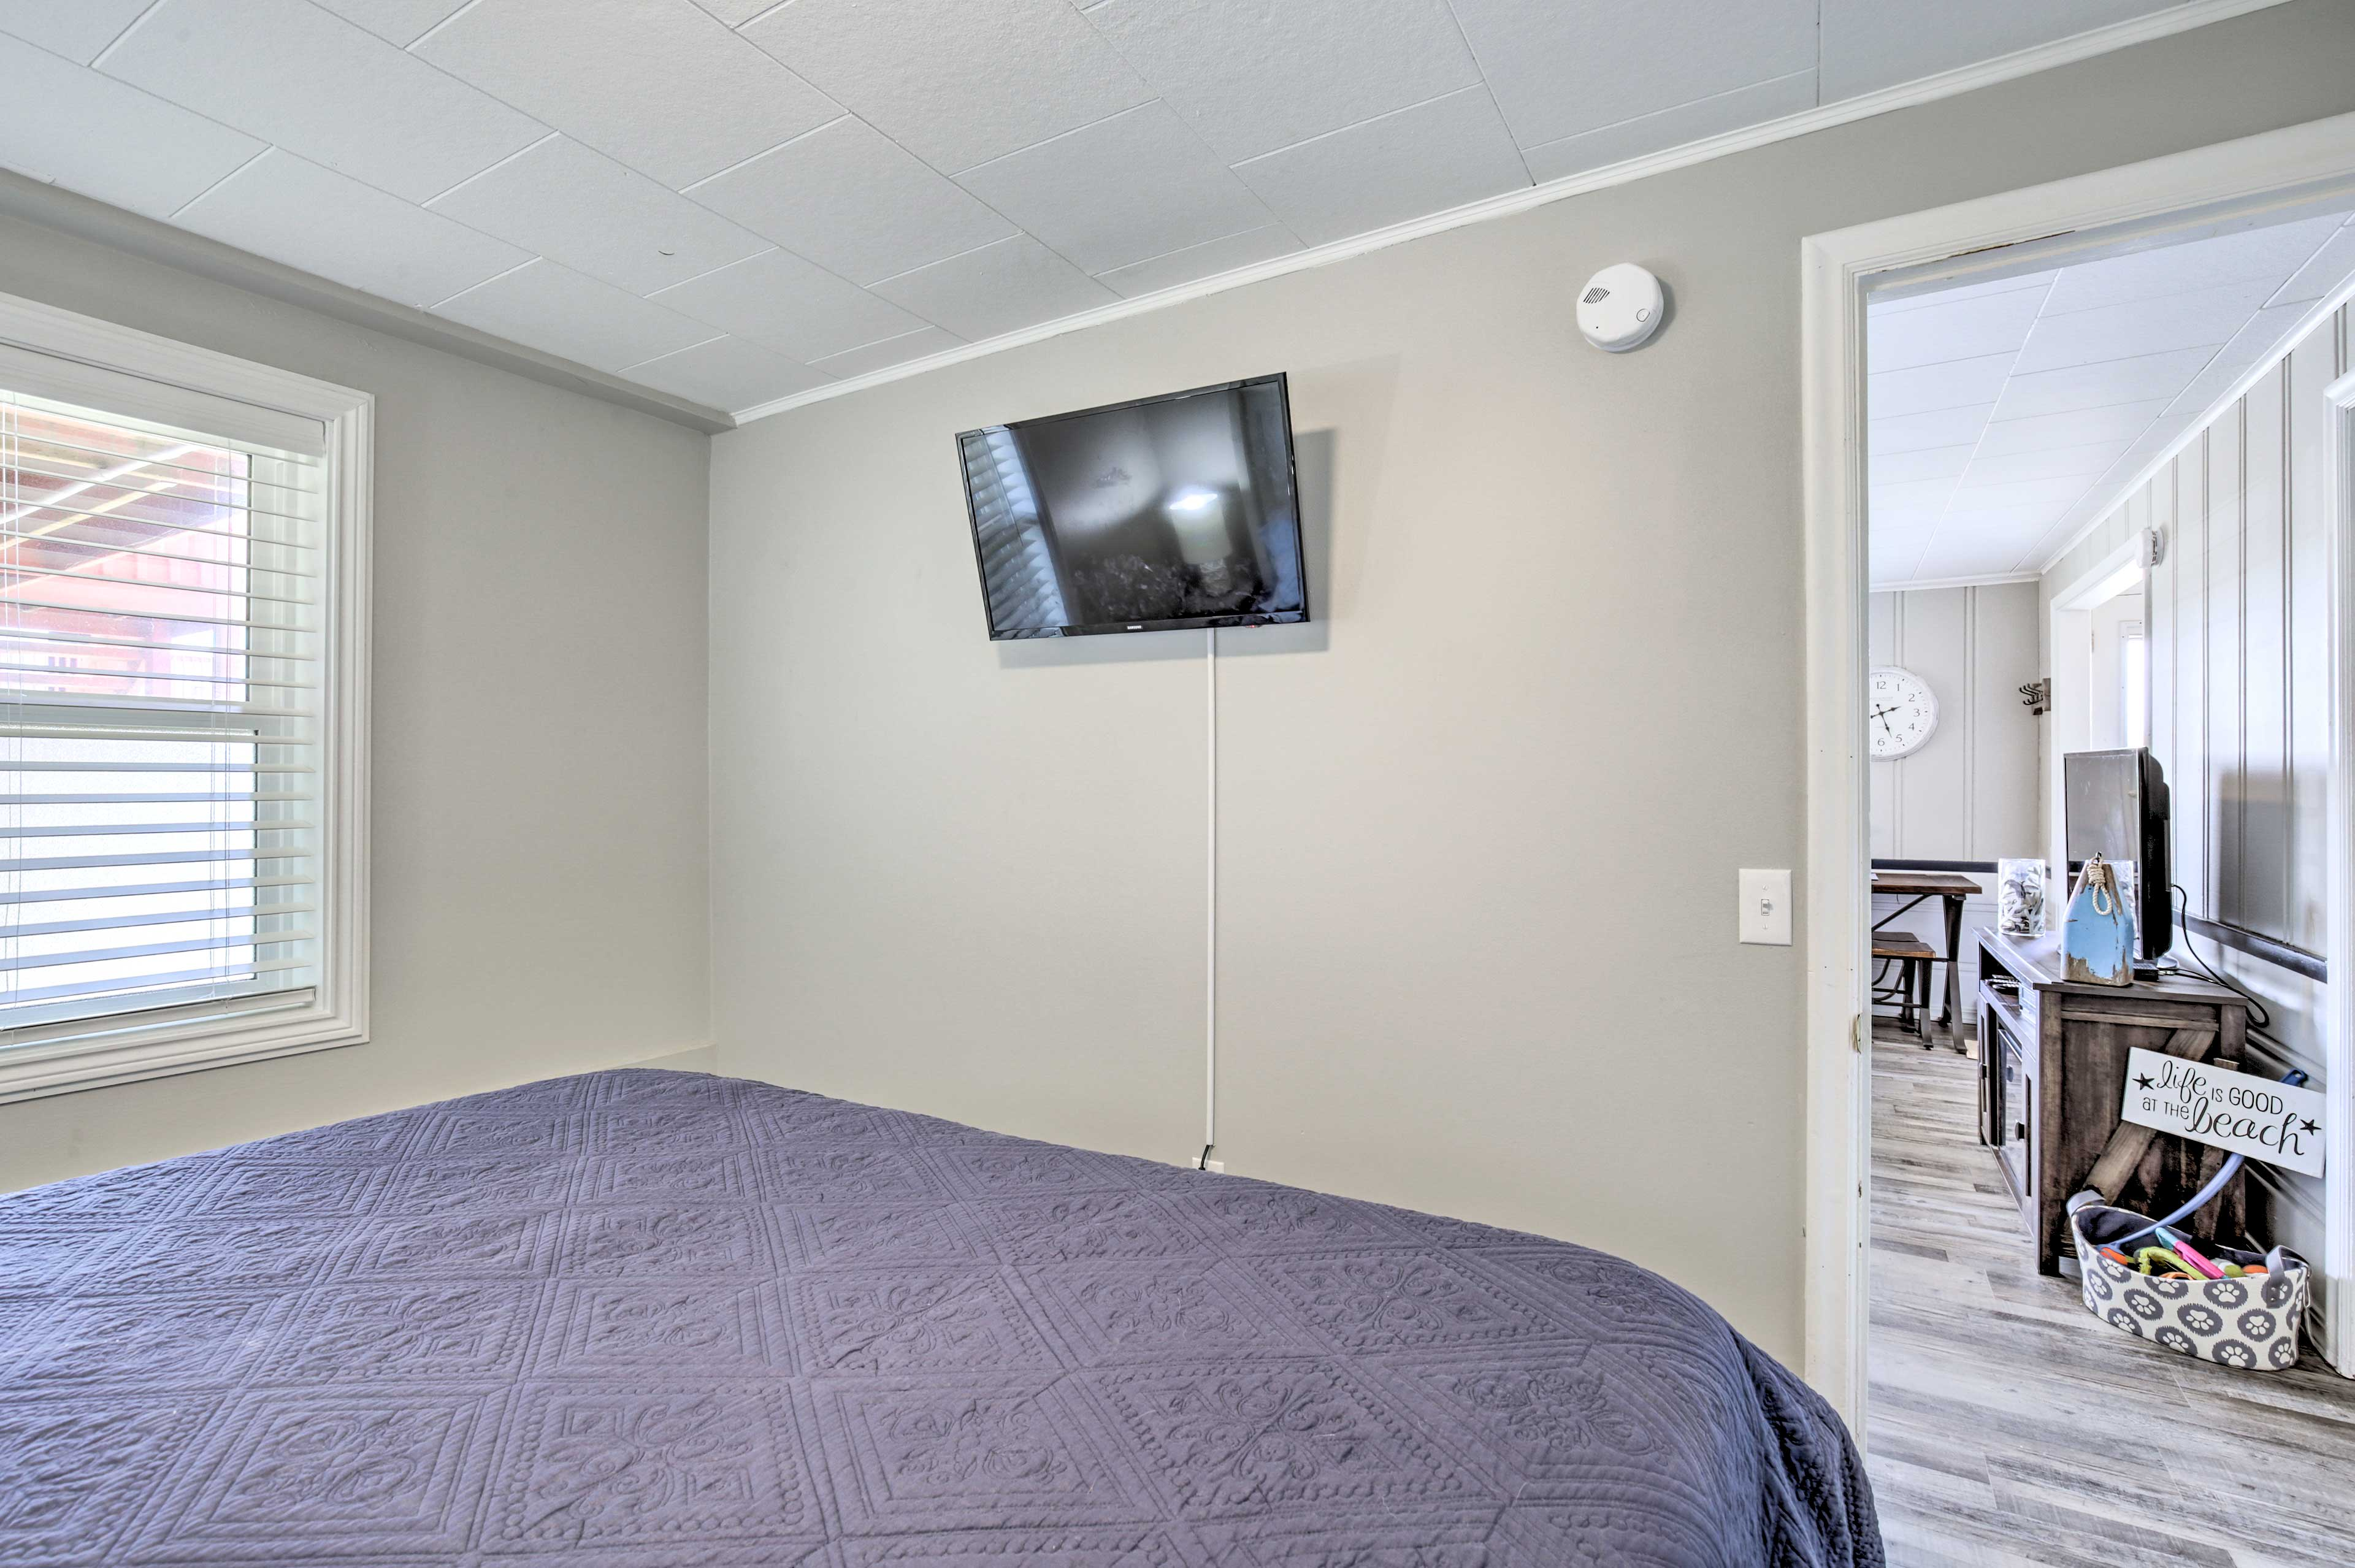 Drift to sleep while watching a movie or TV on the flat-screen!